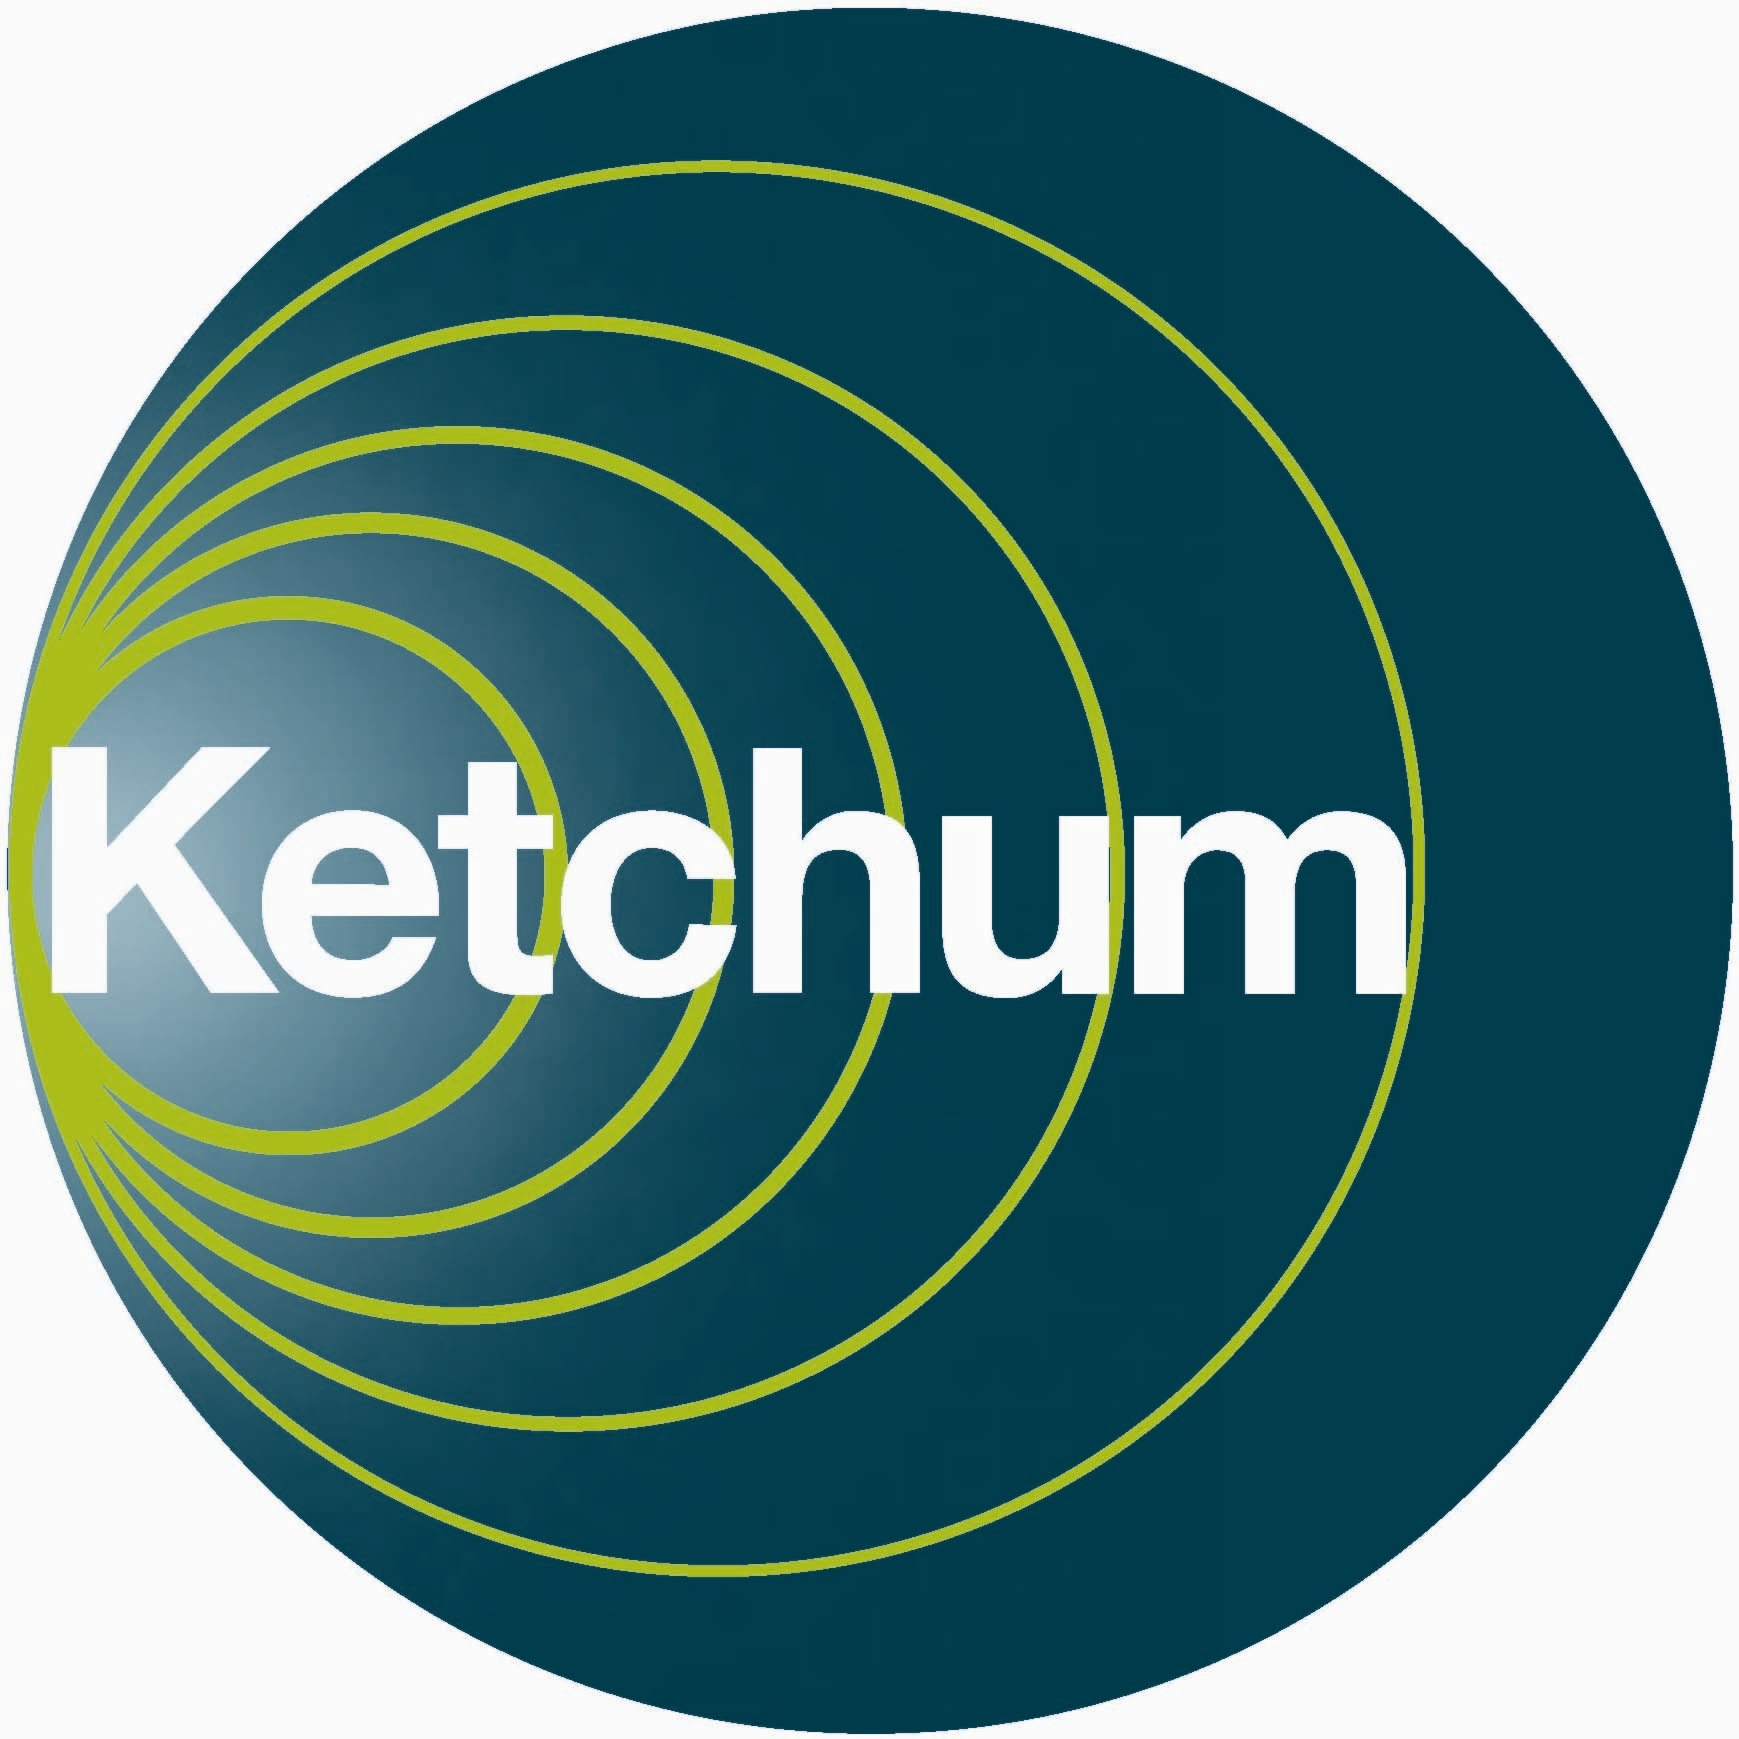 Penn State Enlists Ketchum for Crisis Communications